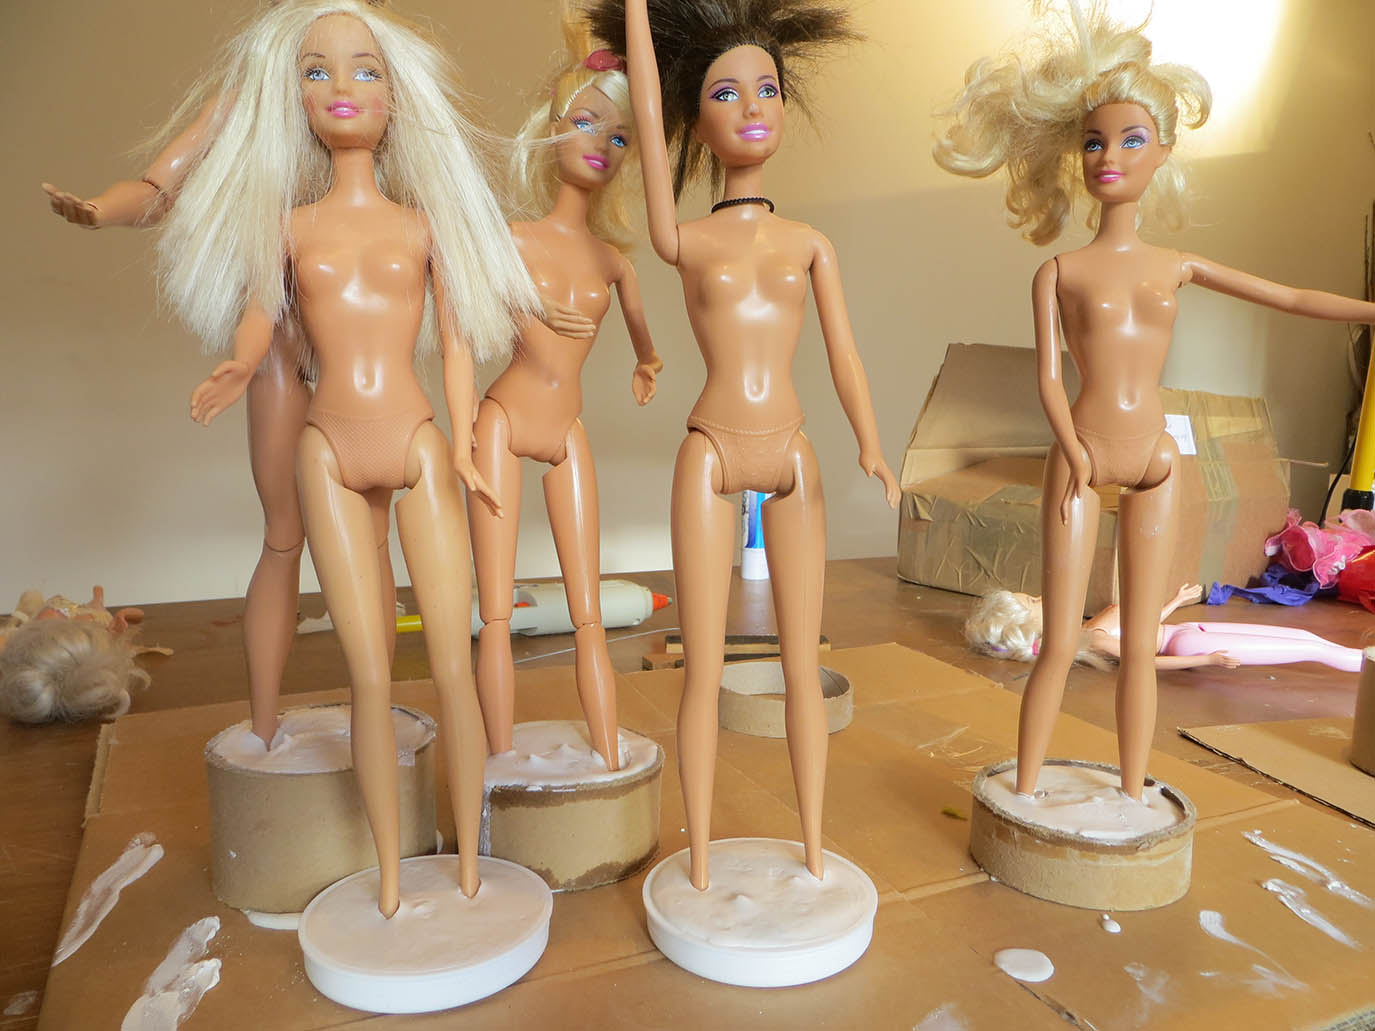 Barbies standing in plaster bases